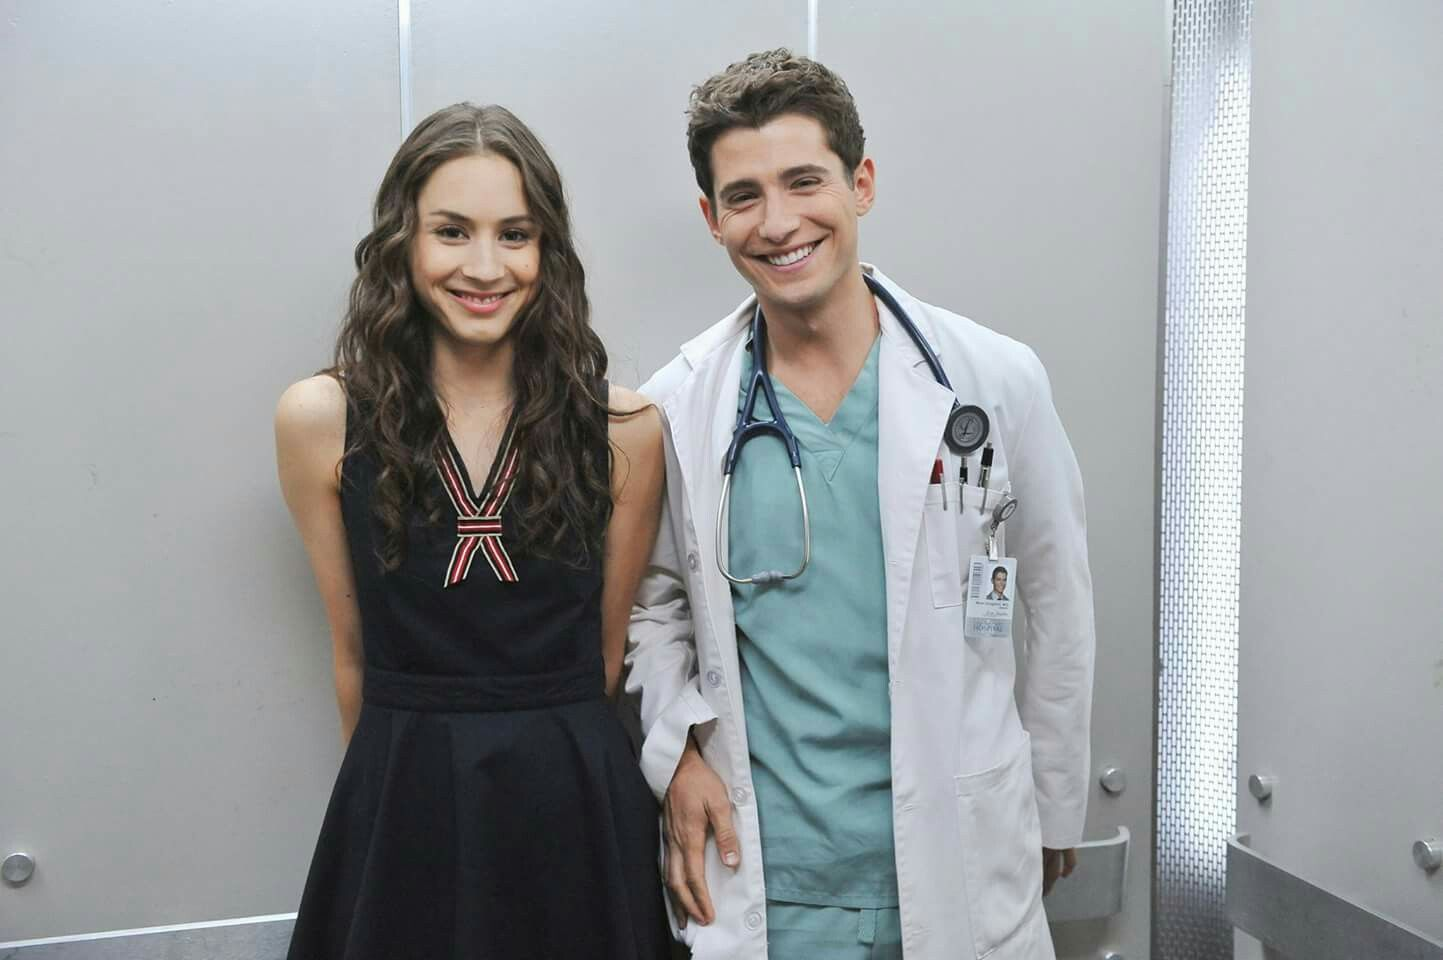 Wren, with a smile like that... You can be our doctor any day.  #BehindTheScenes  30 of 150 // Season 2, Episode 8. #PLLMemoryLane